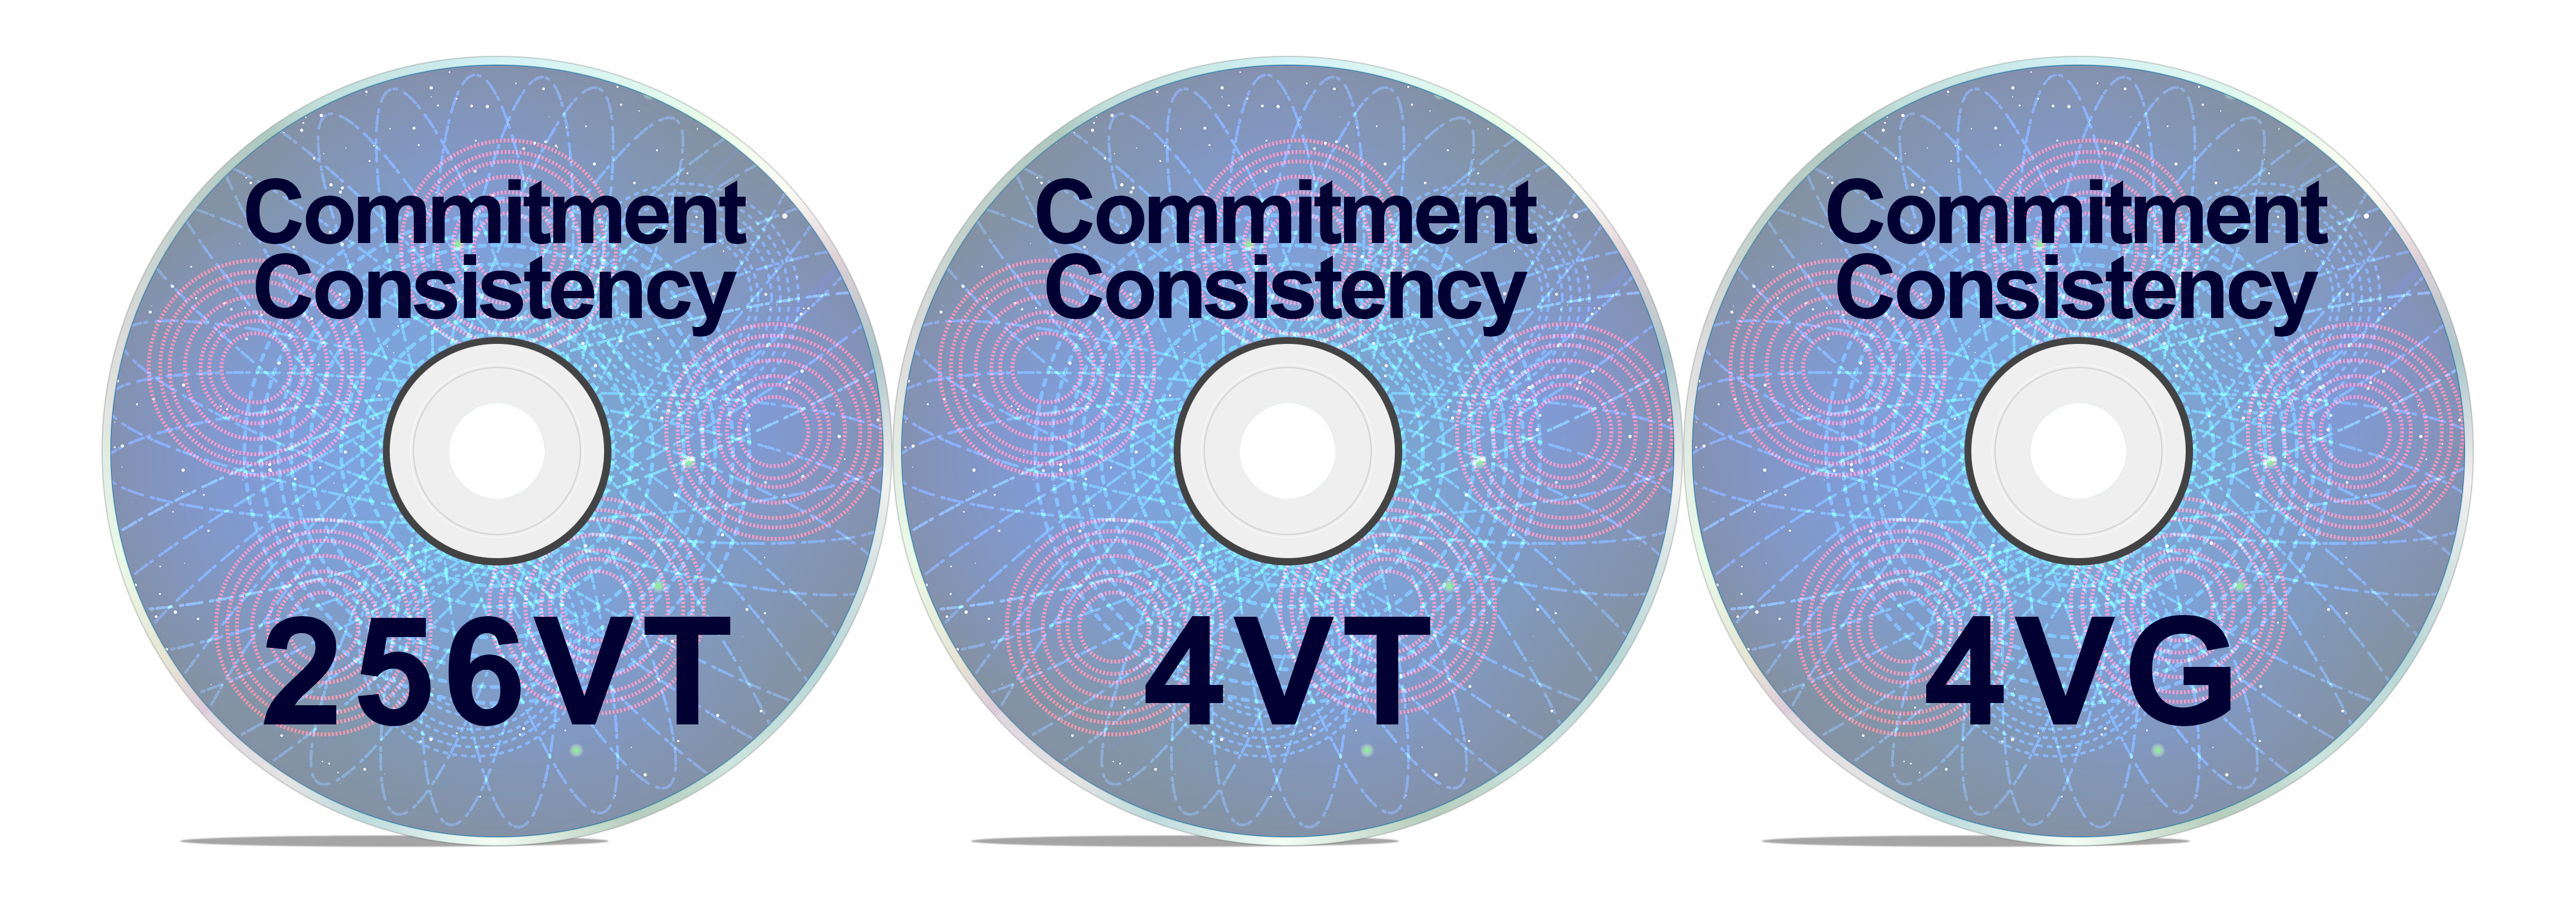 Commitment Consistency